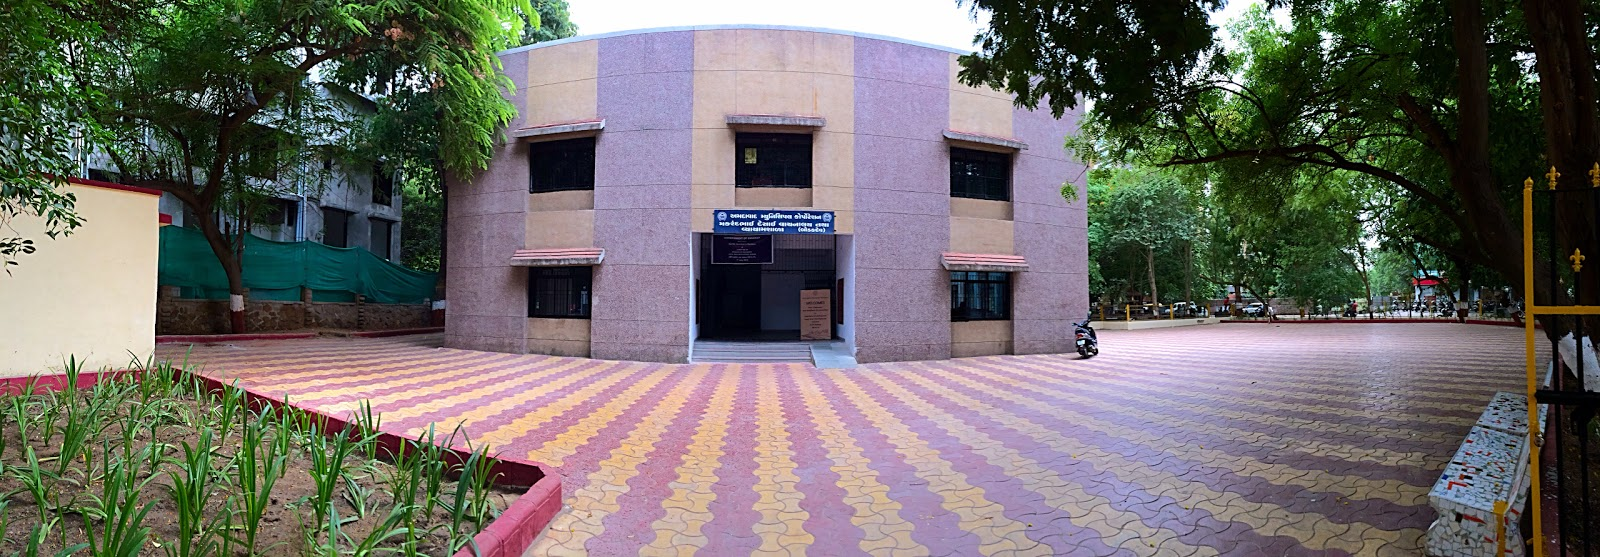 Ahmedabad Municipal Corporation Gym and Library - photo